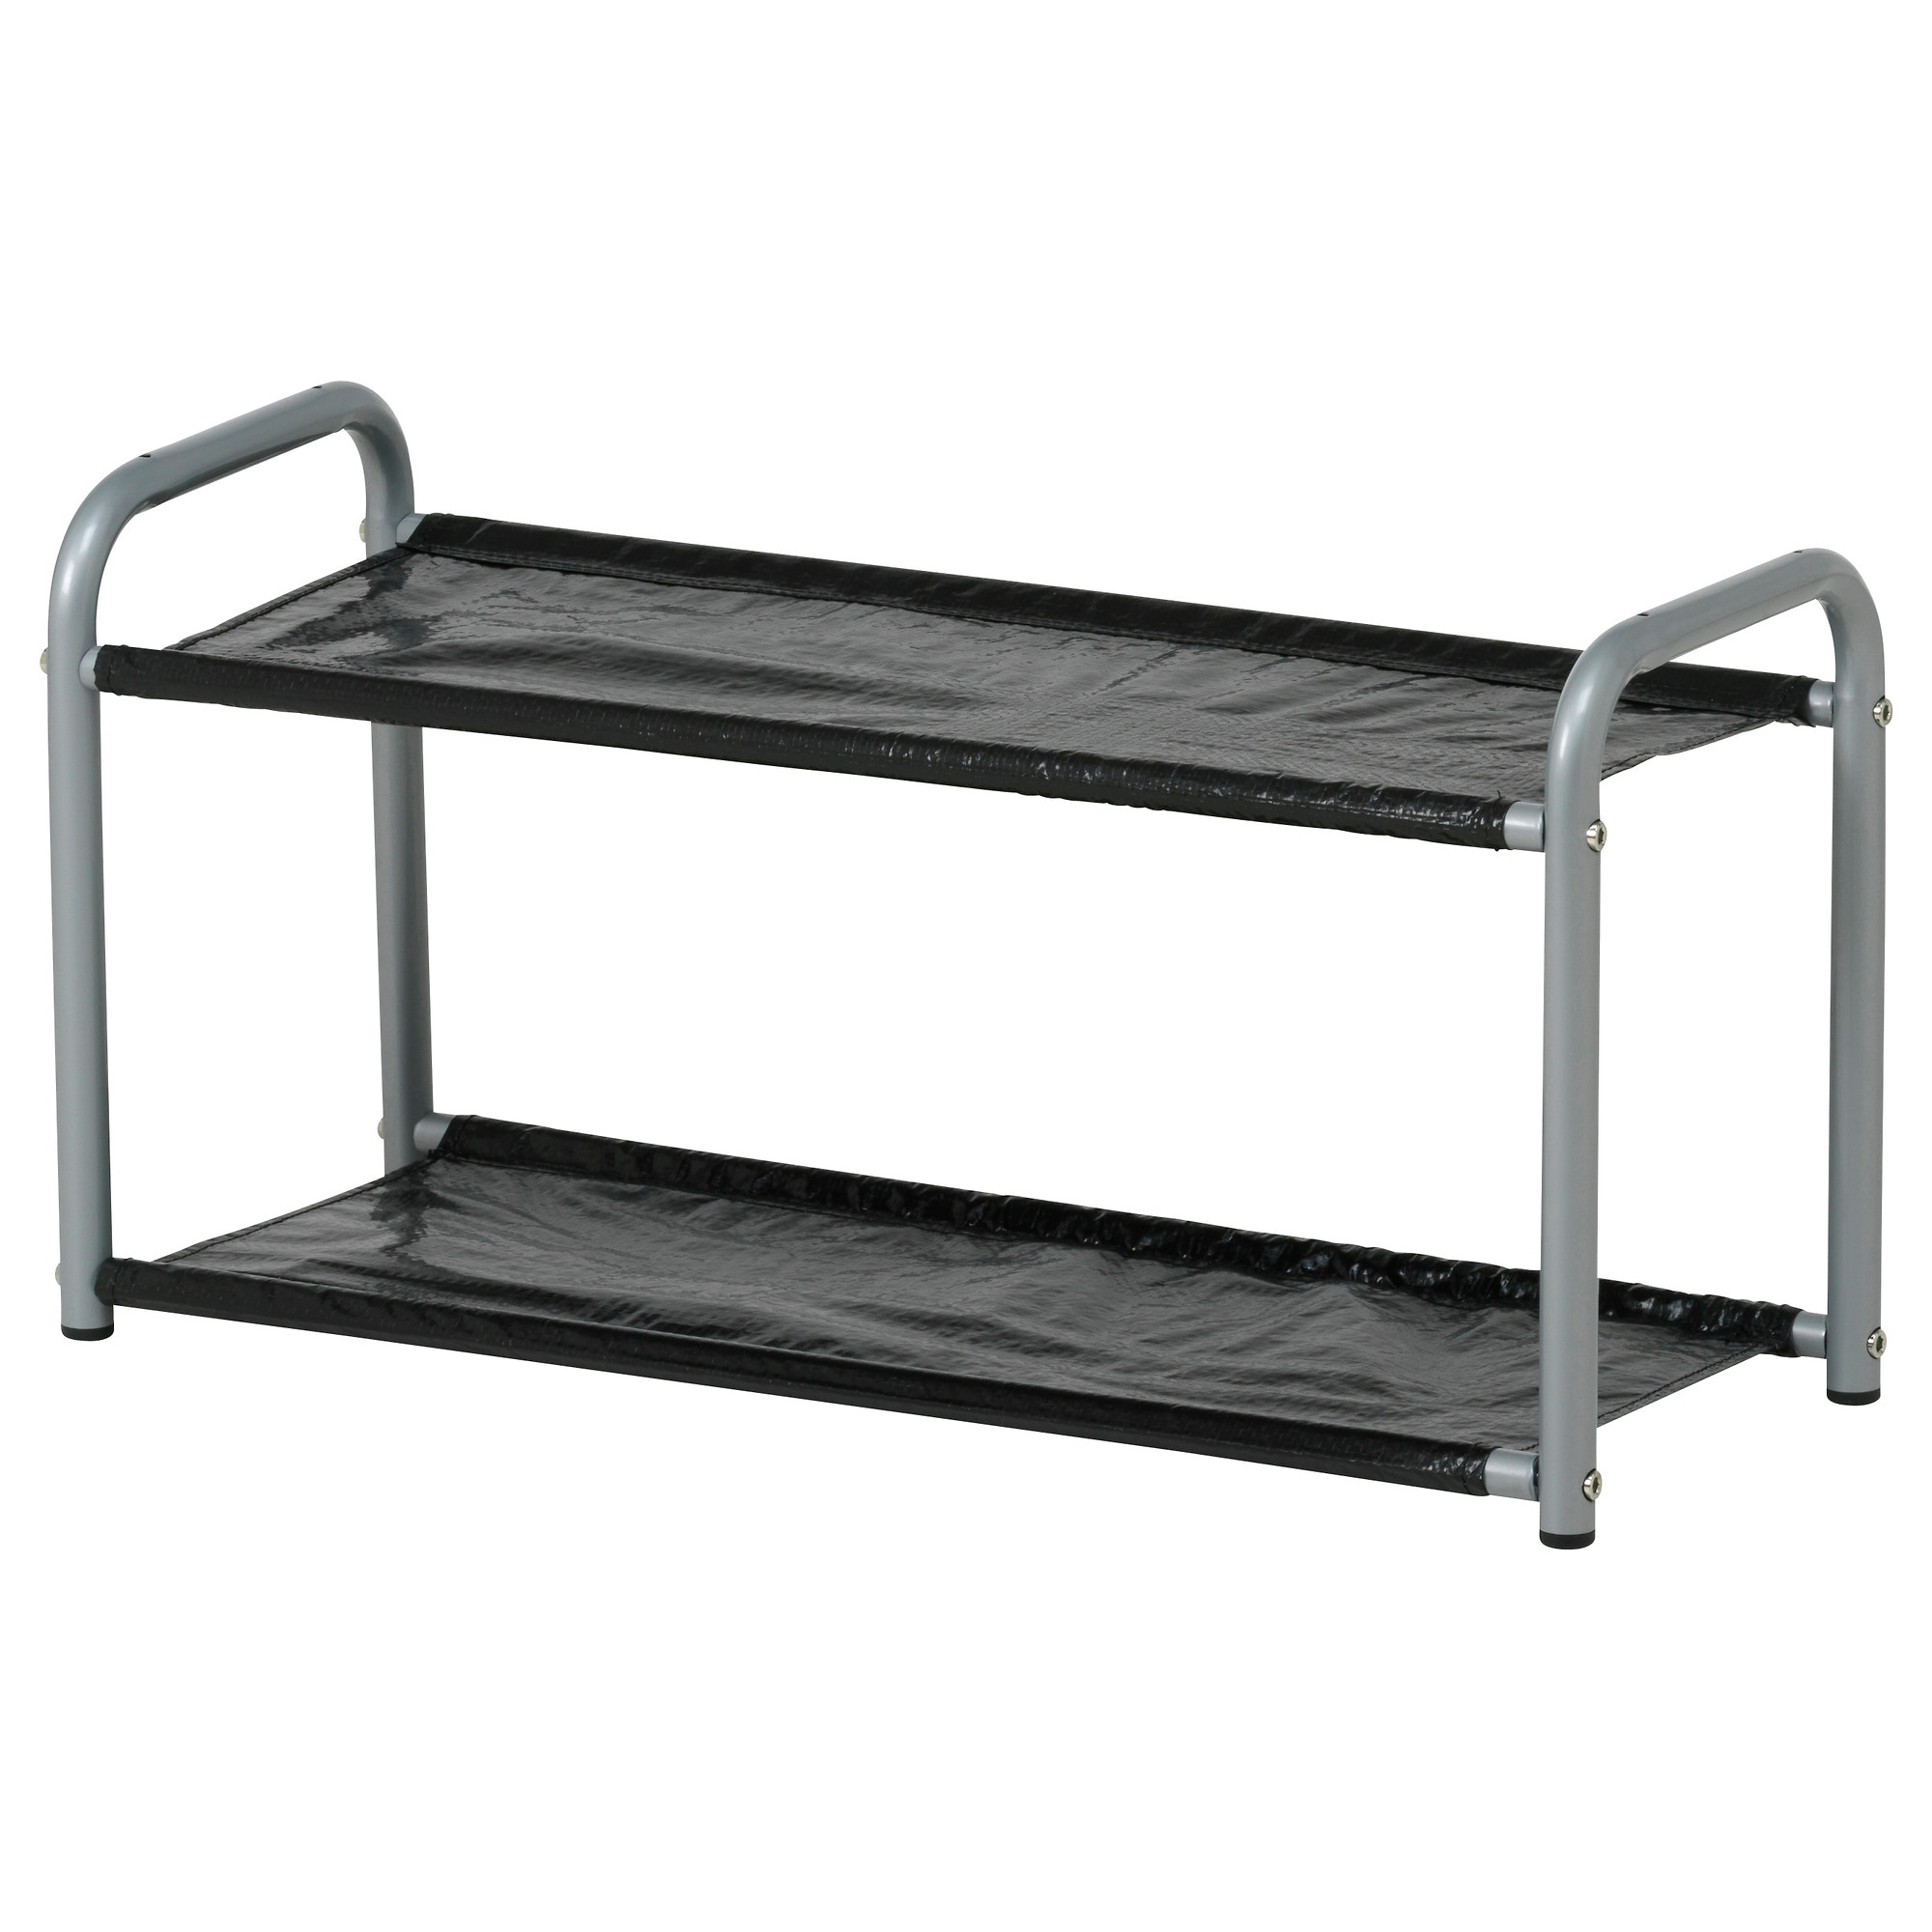 Design Ikea Shoe Racks lustifik hatshoe rack ikea